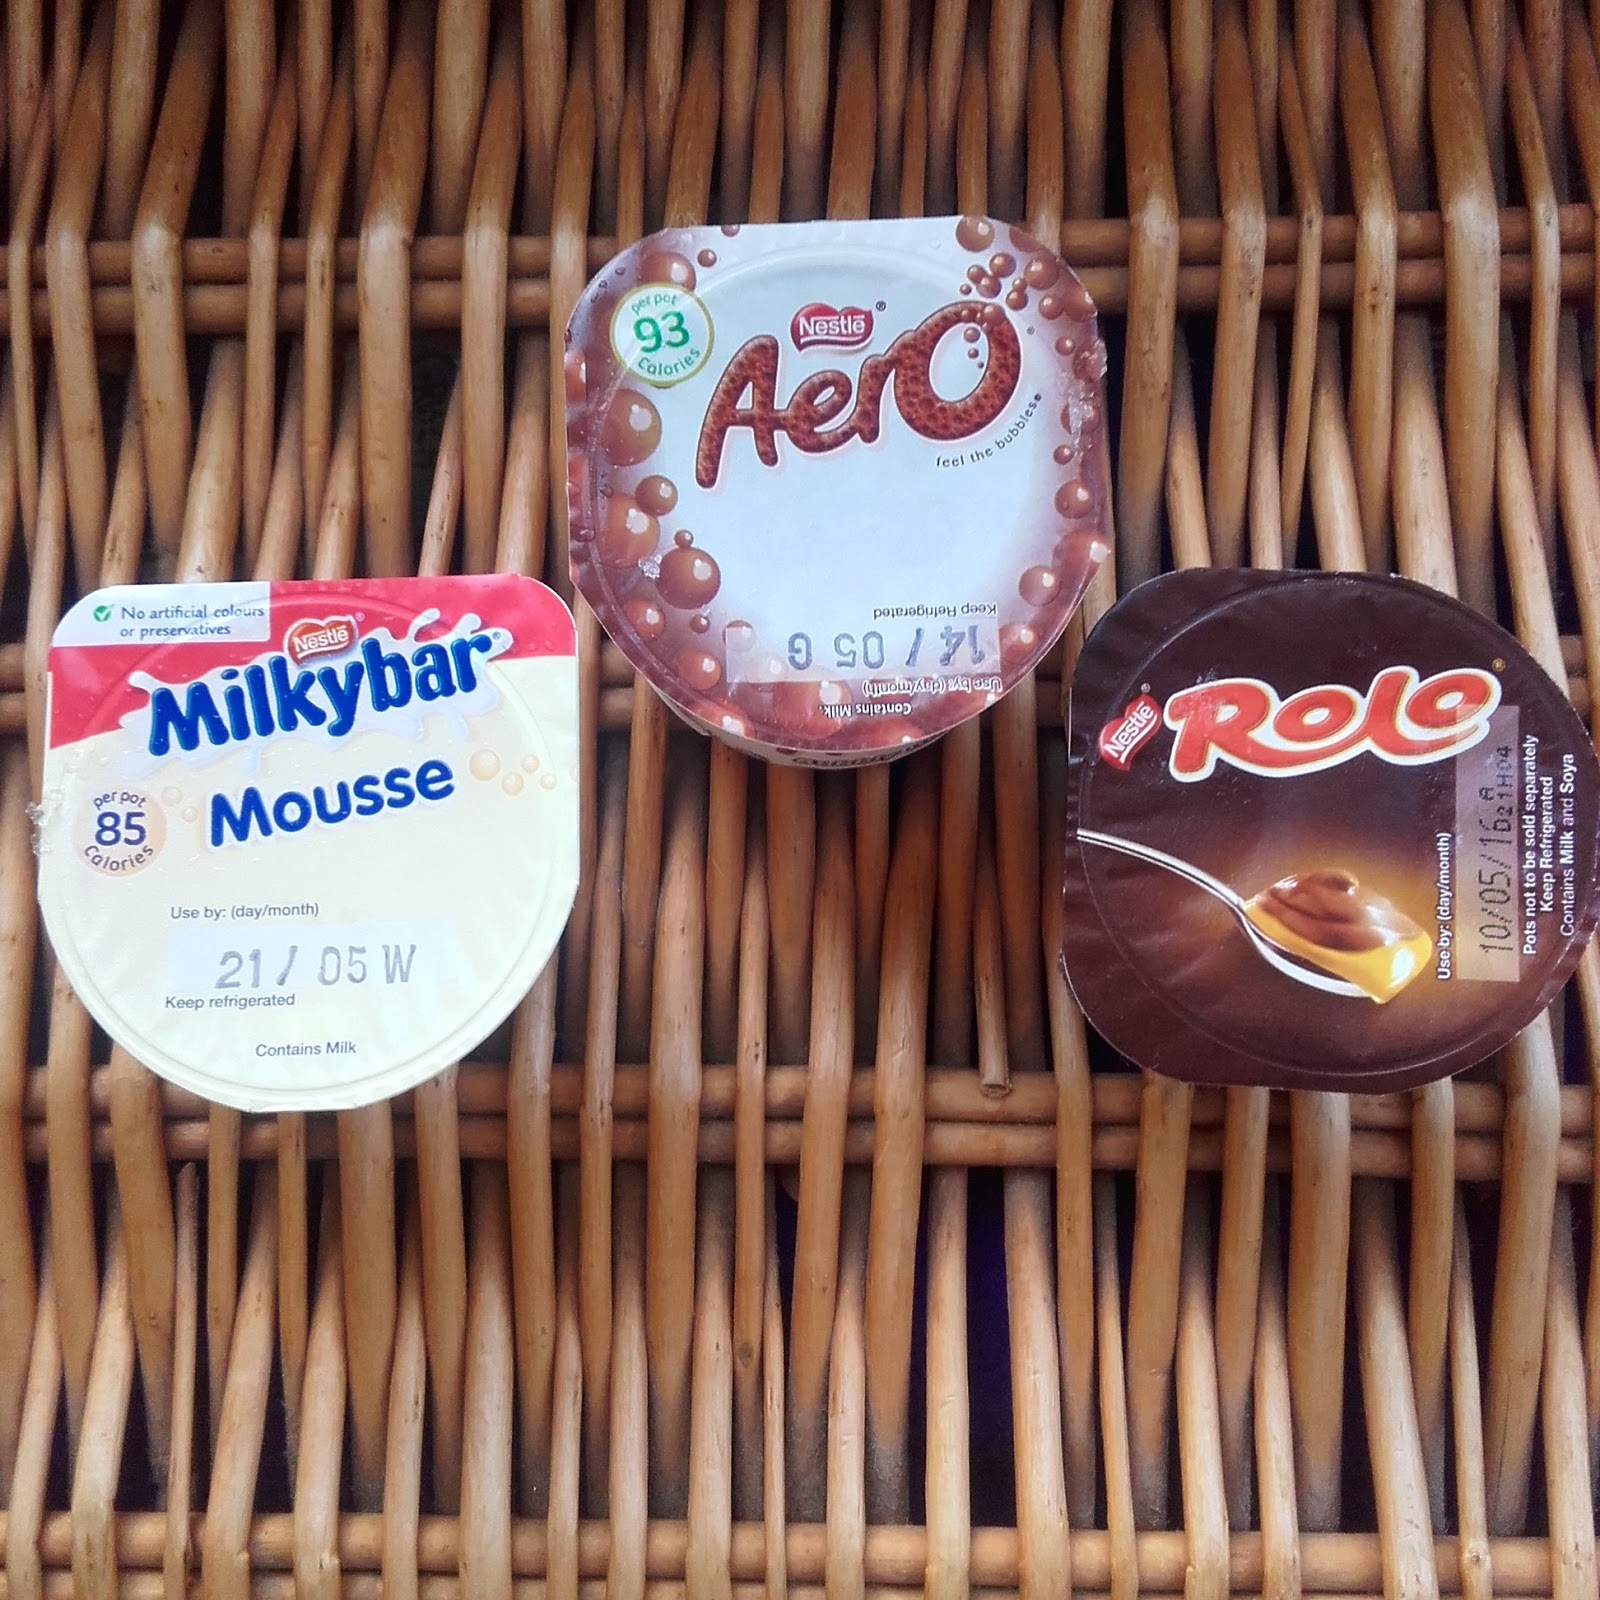 Holly Lois Milkybar Aero And Rolo Mousse